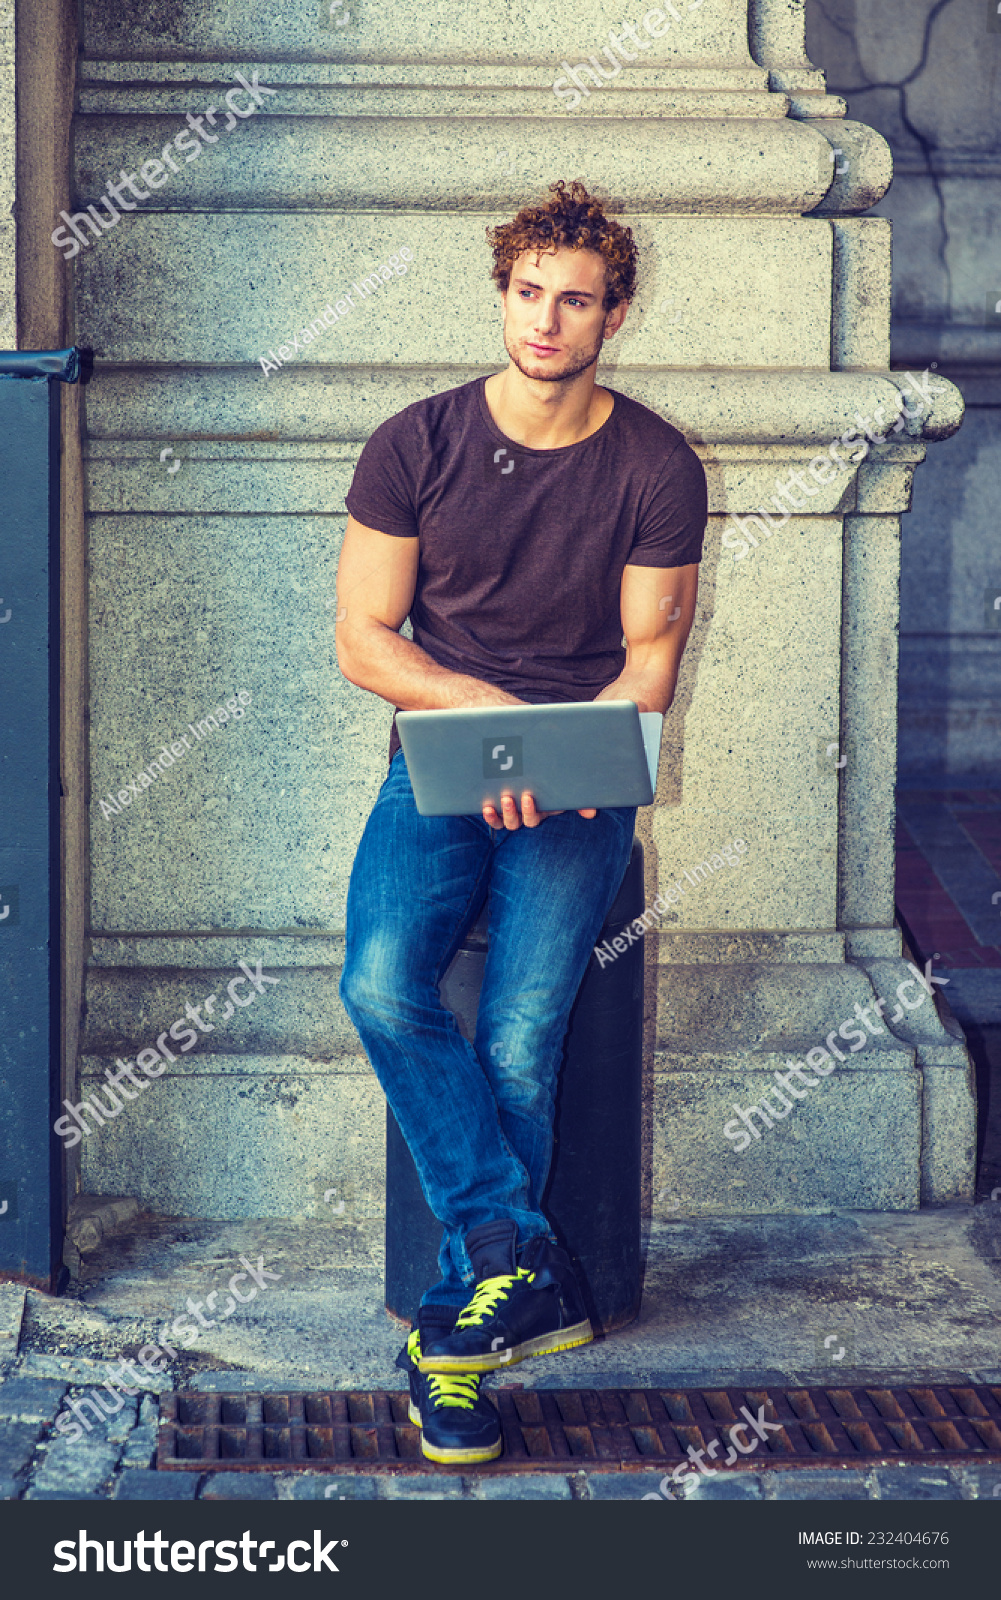 Black t shirt with dark blue jeans - Wearing Dark Brown T Shirt Blue Jeans Black Sneakers